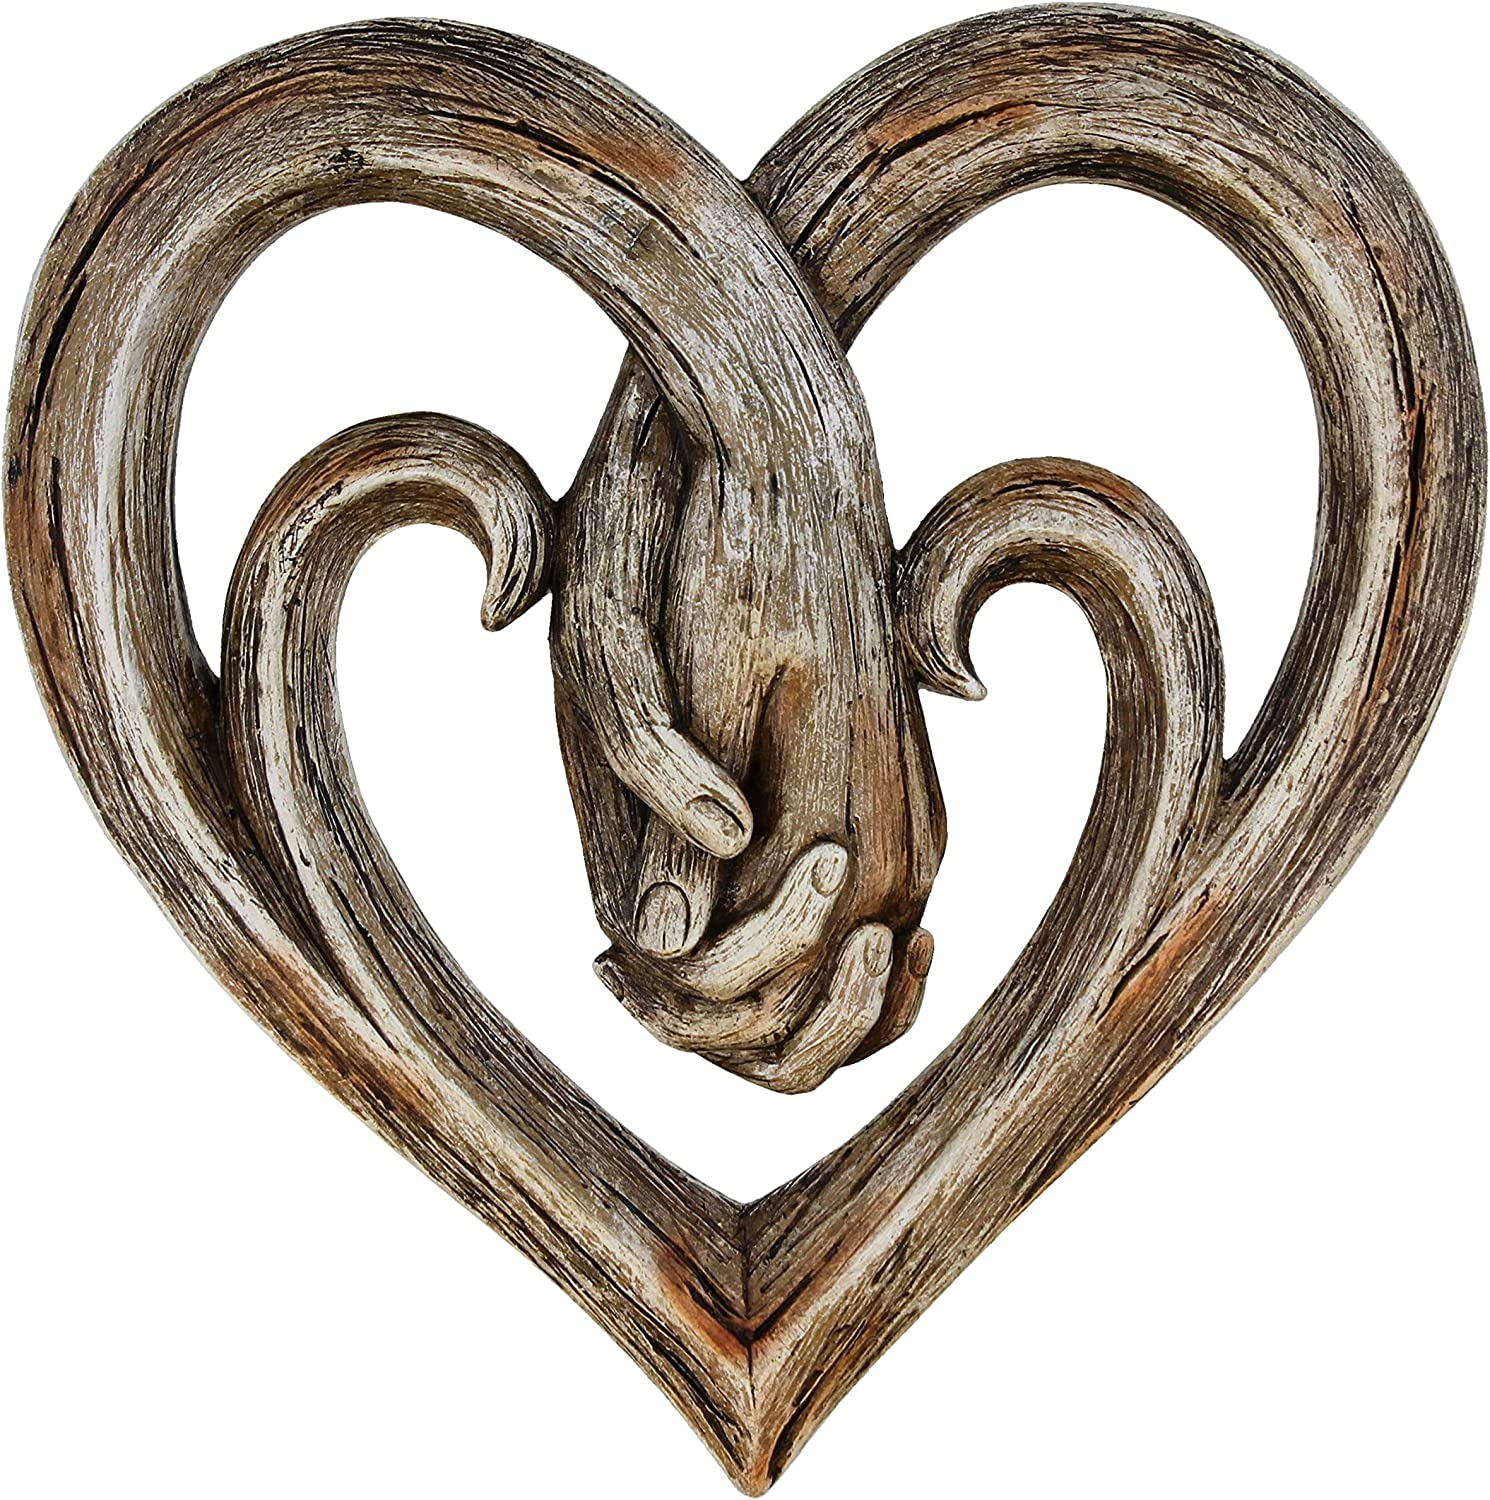 Heart Holding Hands Wall Decor Decorative Art Sculpture - Faux Wood Finish - Forever Love